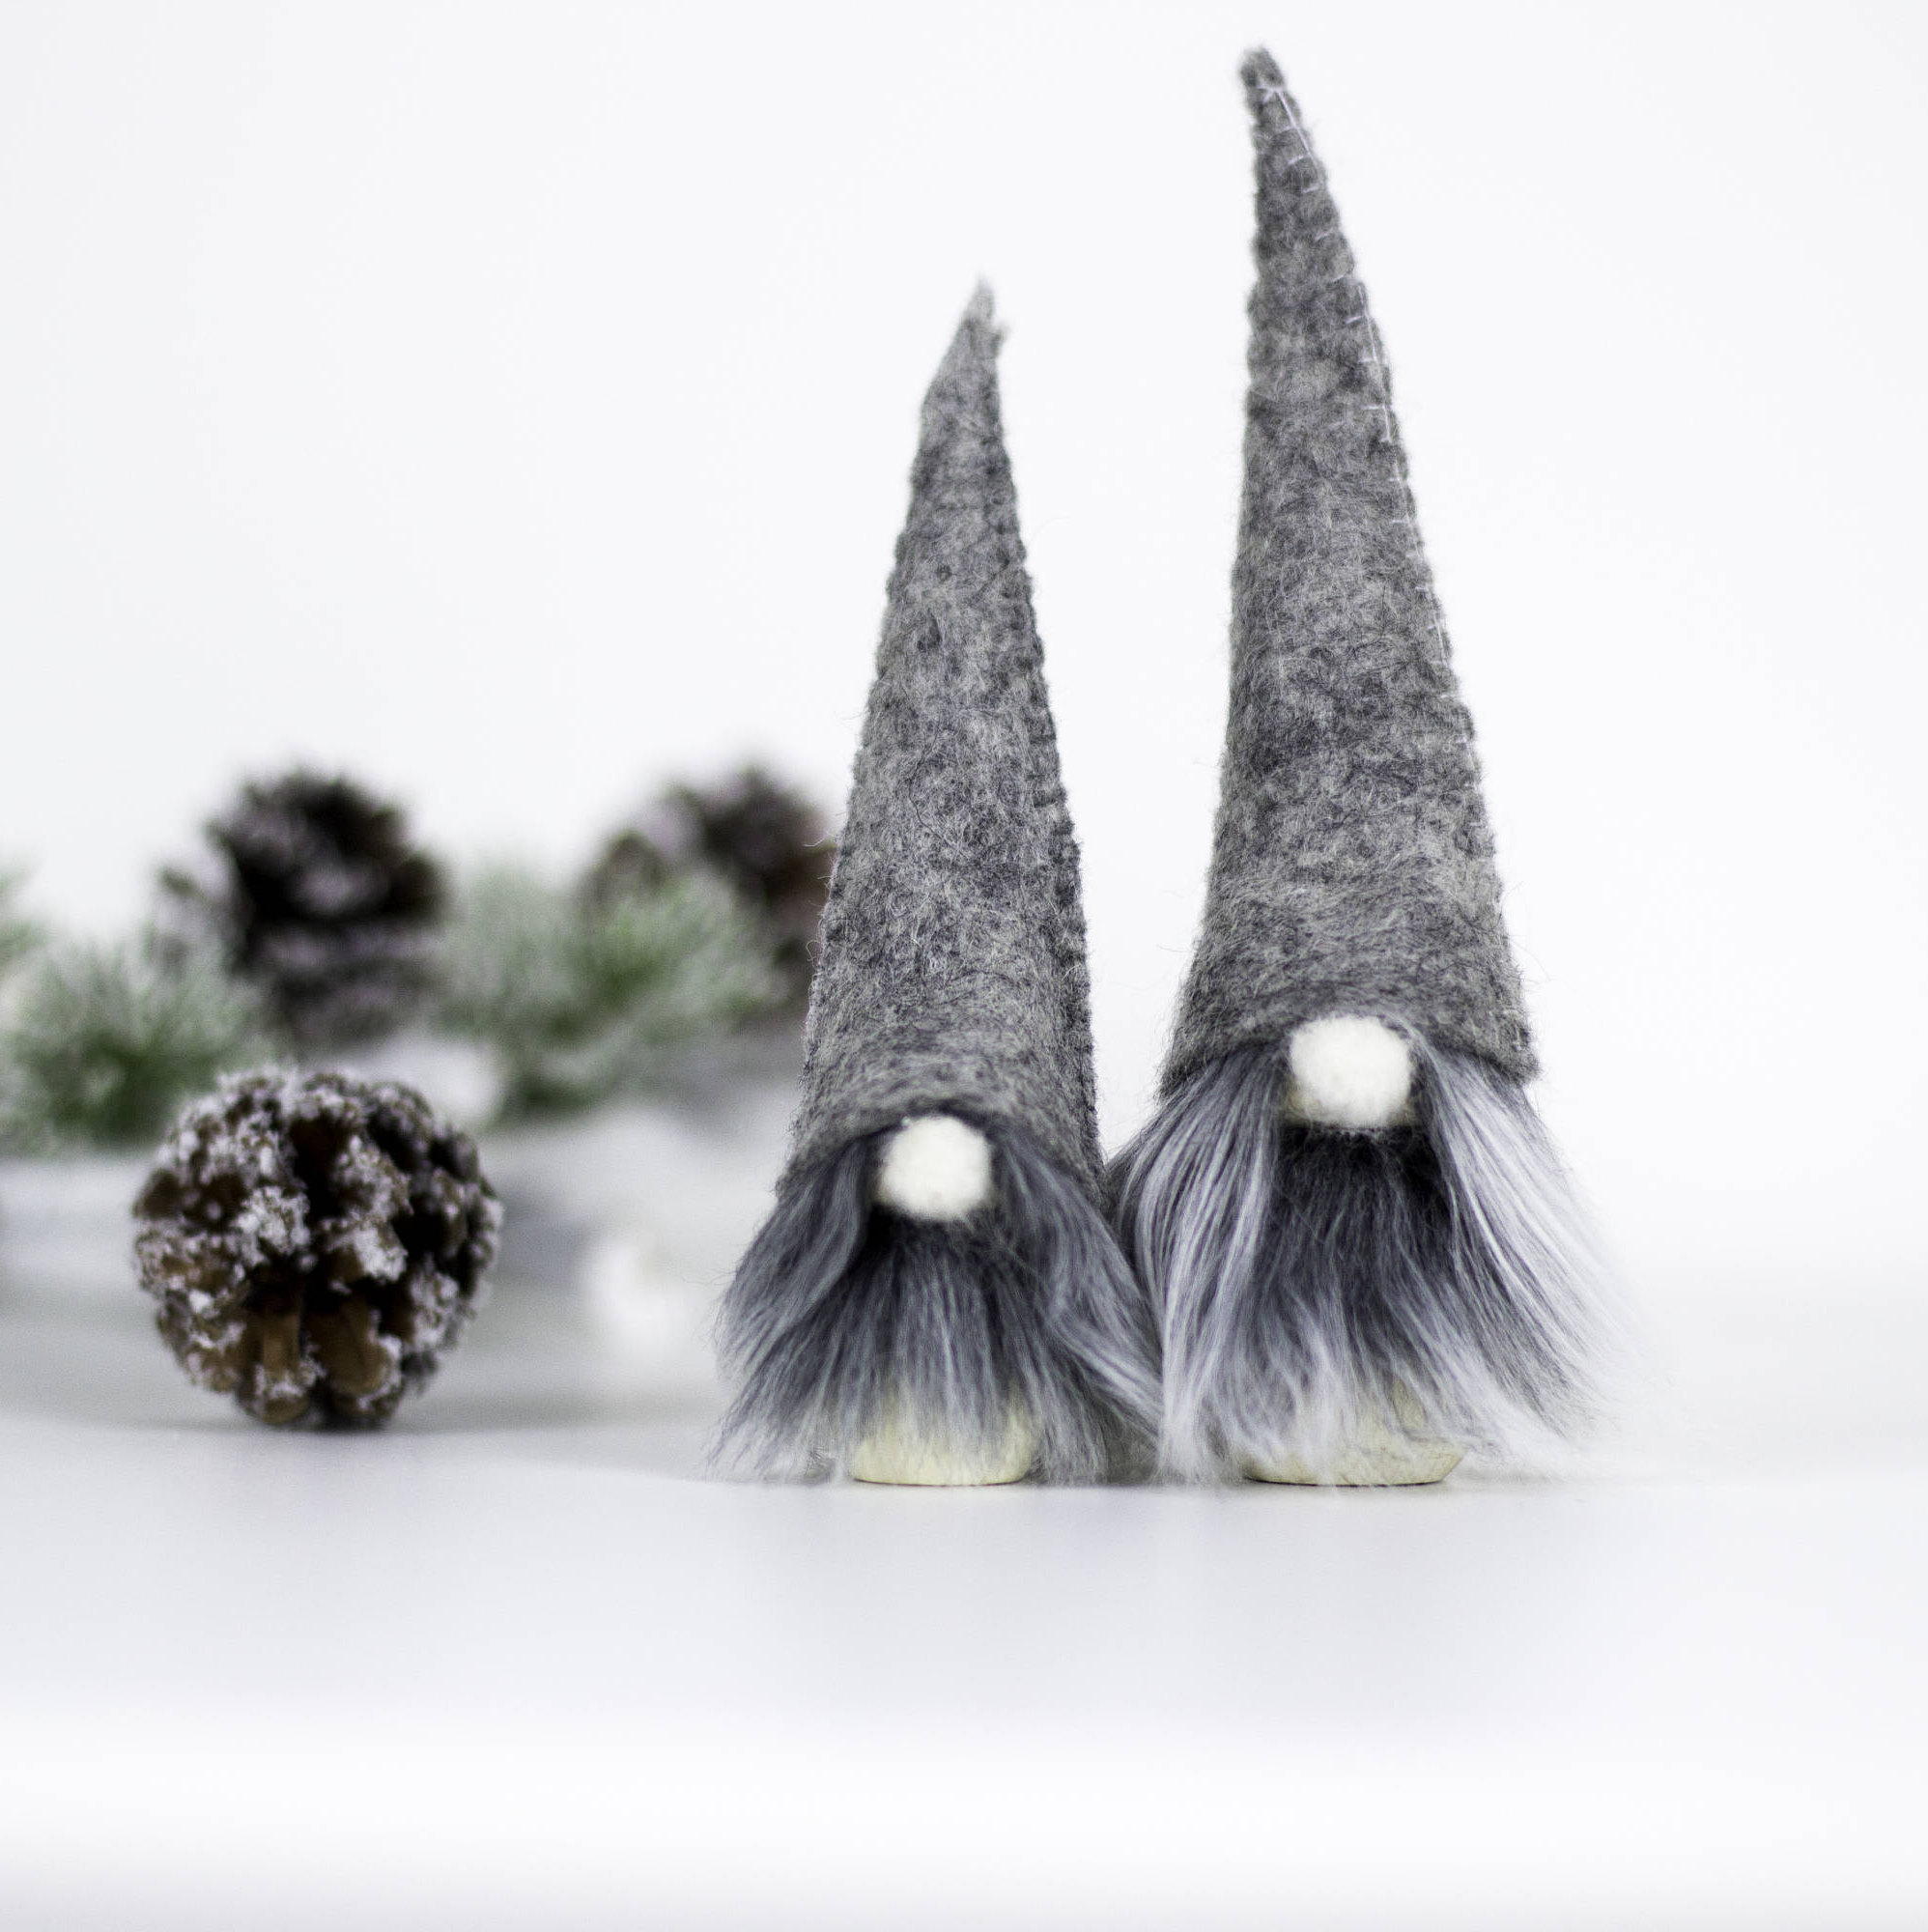 Nordic Christmas tree gnome decorations  by Littleromadecor